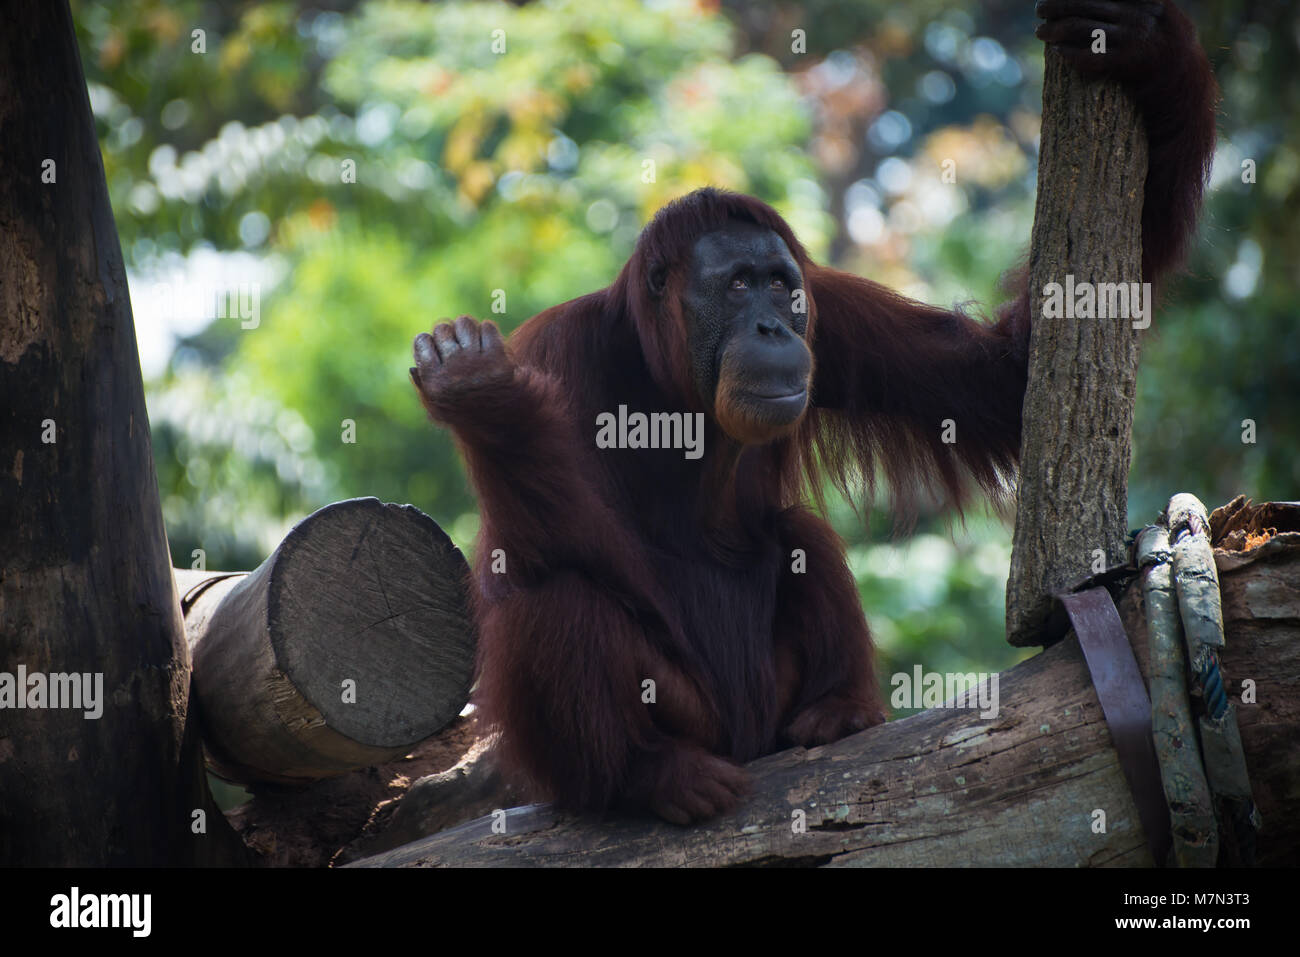 Pensive primate looks up. Smiling orangutan sits alone on the tree. Funny monkey on the nature background - Stock Image